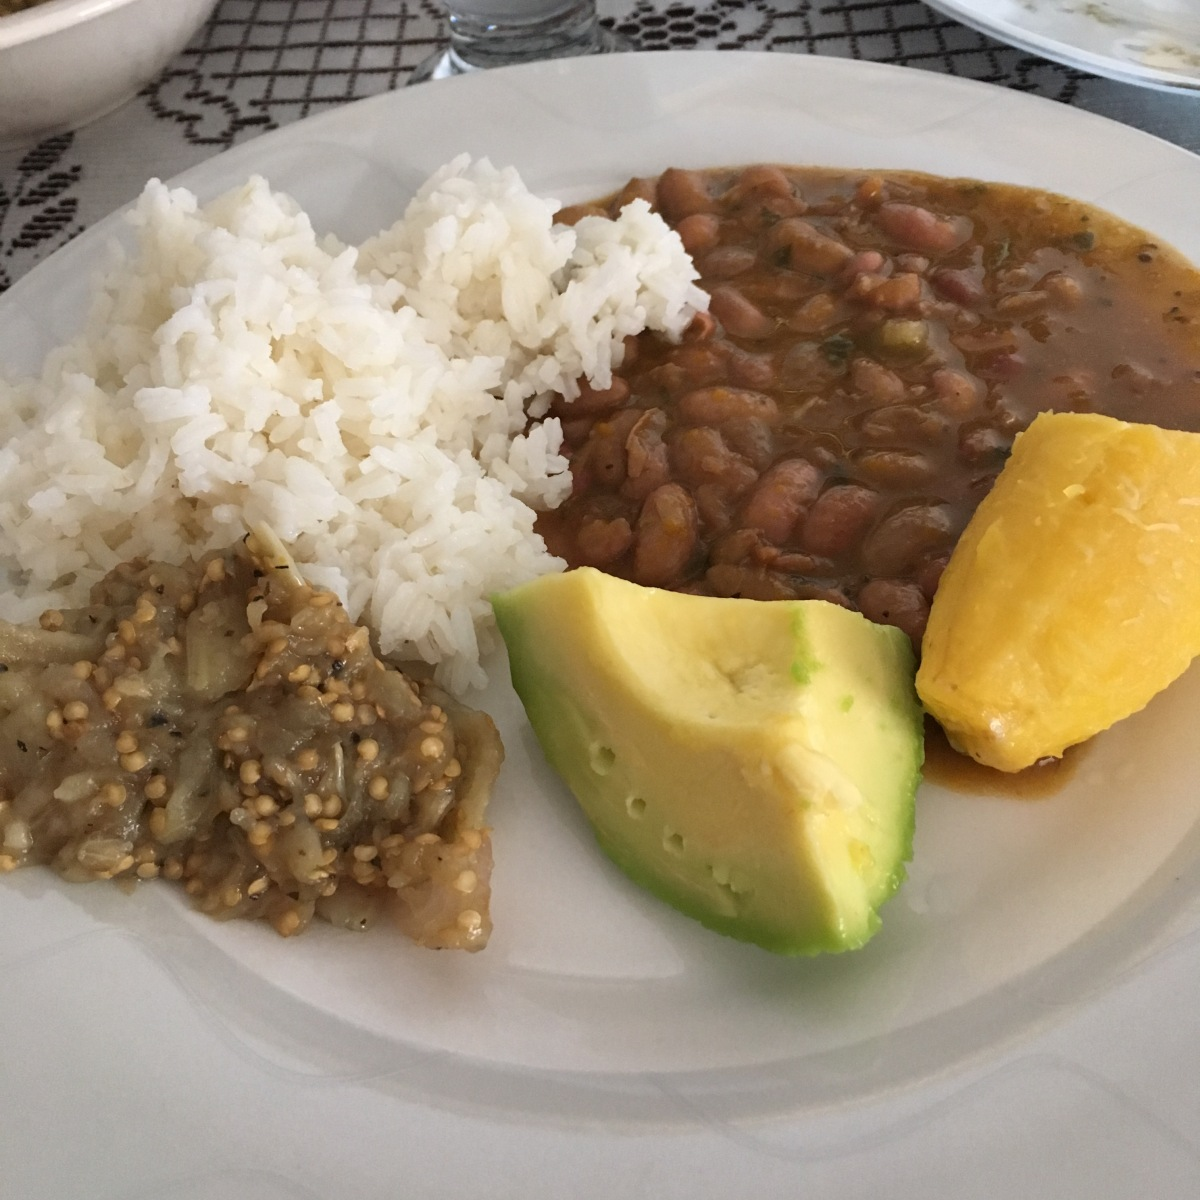 Eating my way through the Dominican Republic